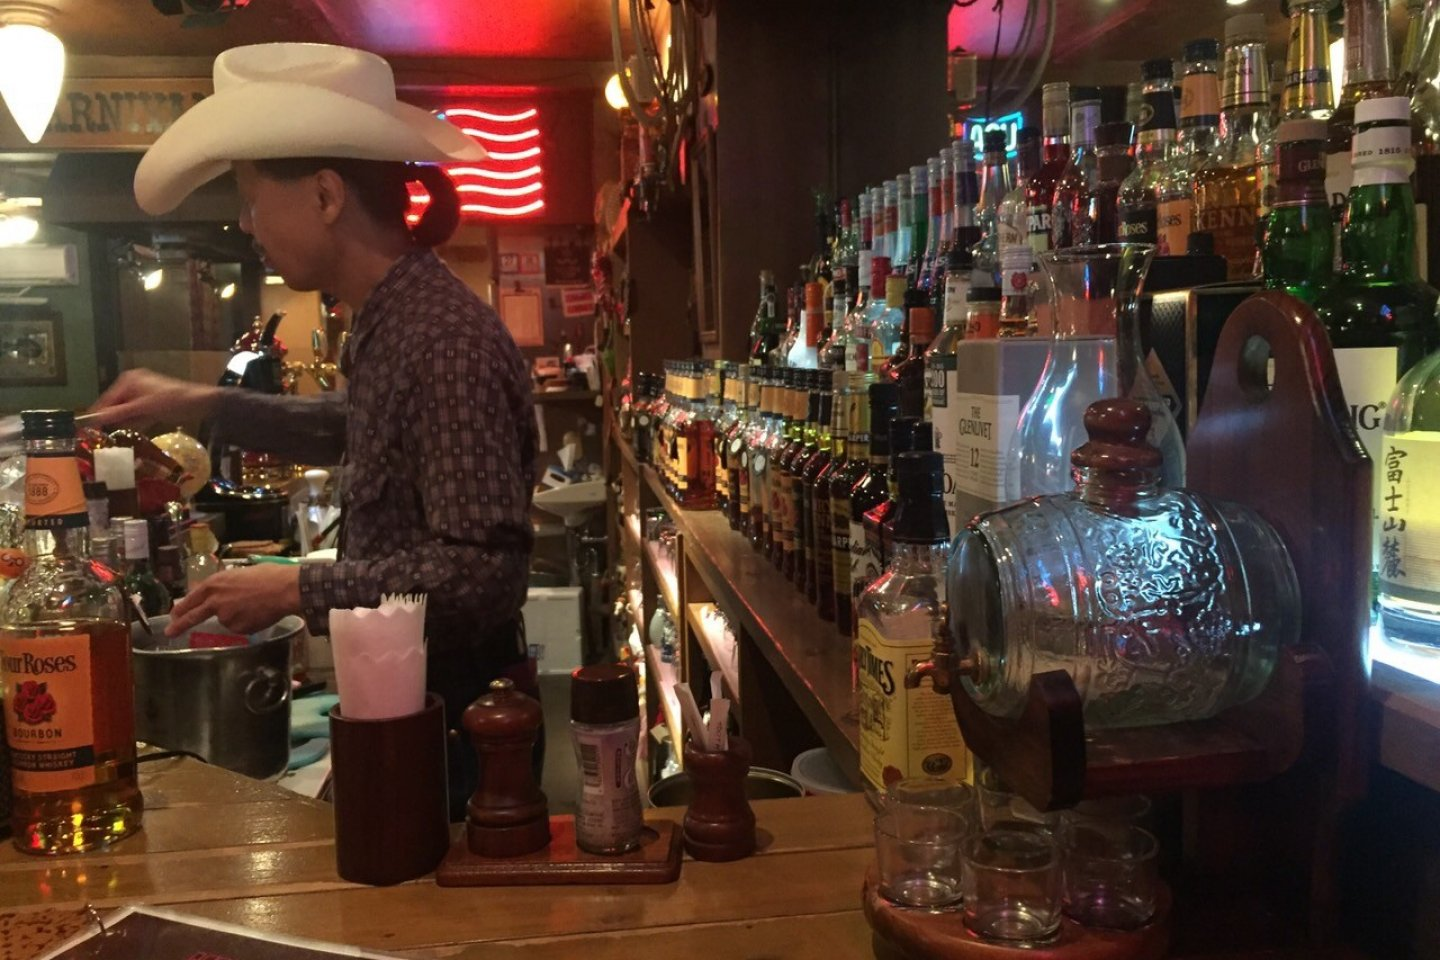 A bartender in a cowboy hat mans the bar area at Steak and Bar Red River in Chiba.